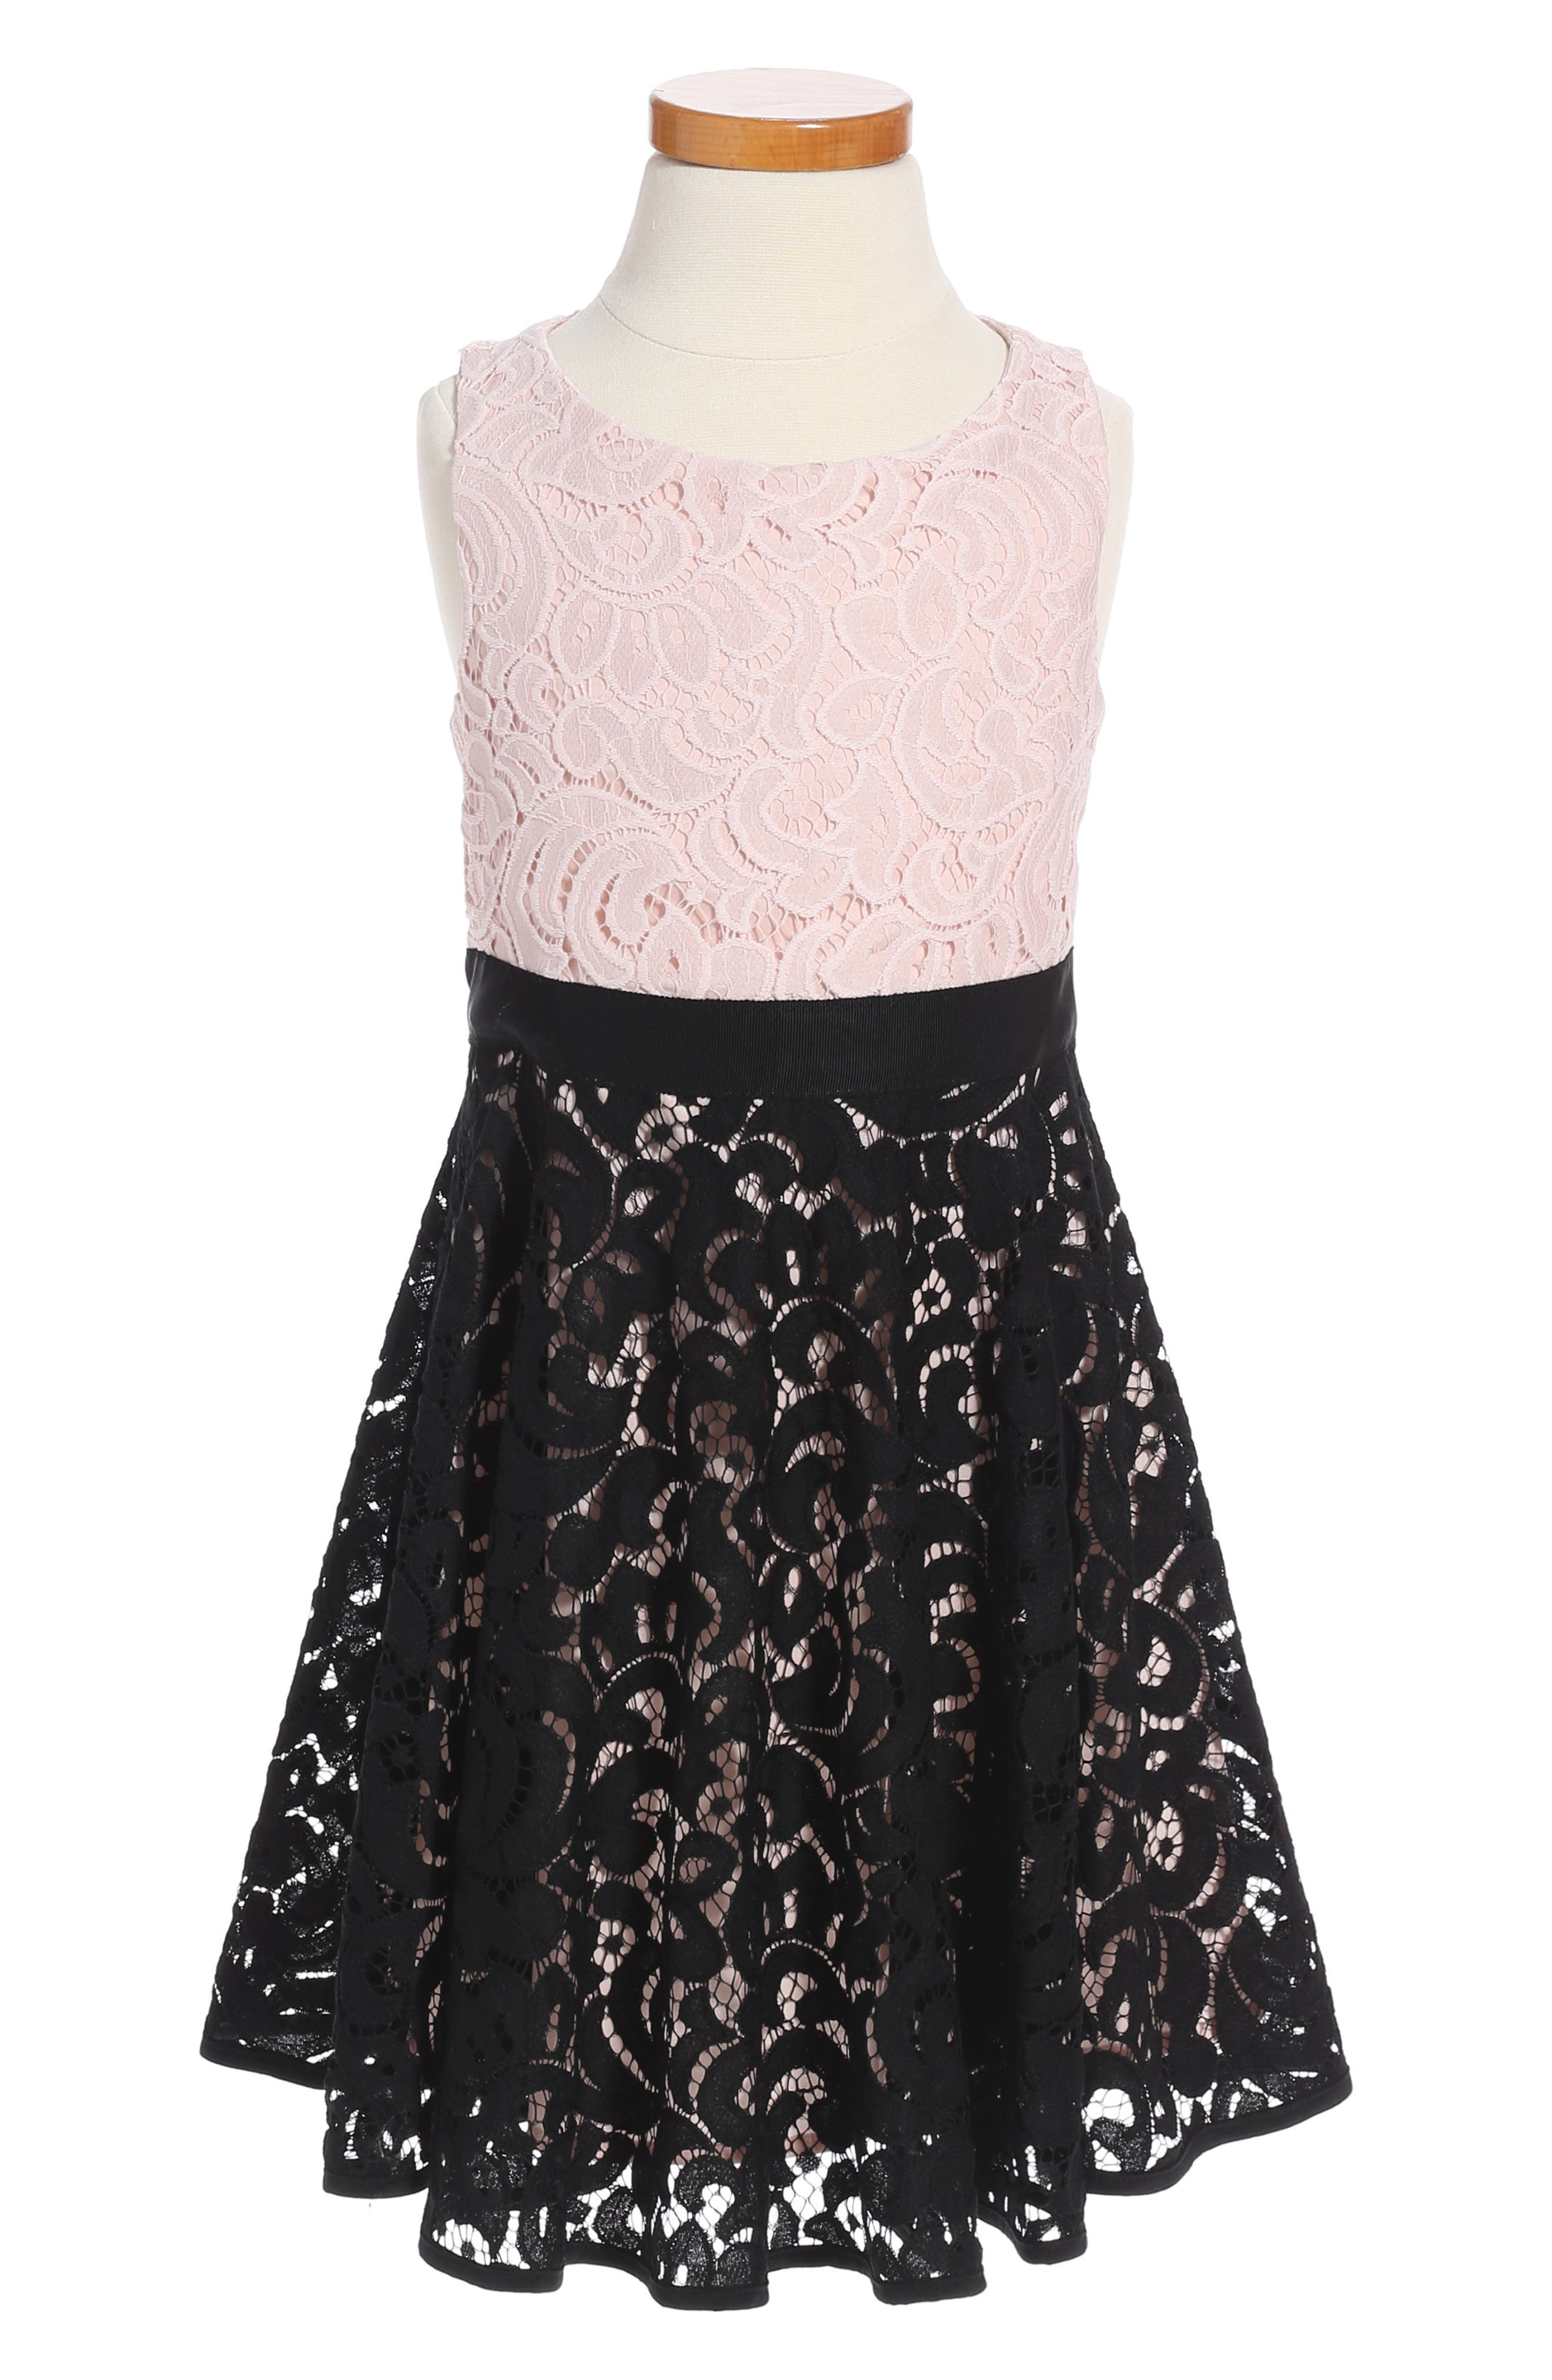 Alternate Image 1 Selected - Milly Minis Lace Combo Dress (Toddler Girls, Little Girls & Big Girls)